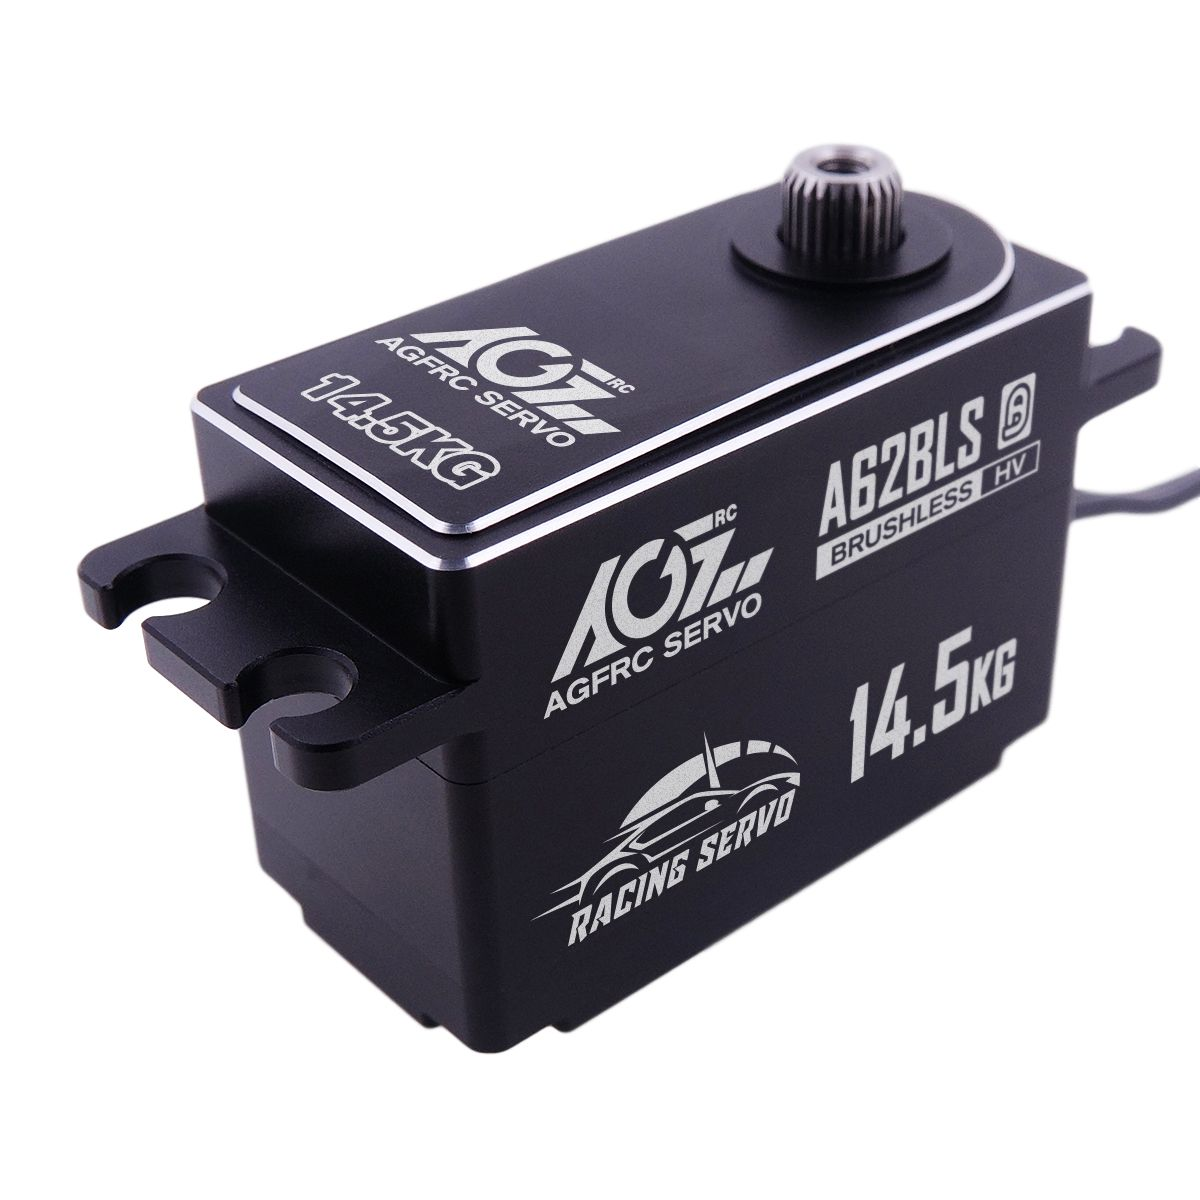 A62BLS 0.062S 14.5KG High Speed Low Profile Steel Gear Servo For 1/8 Racing Car